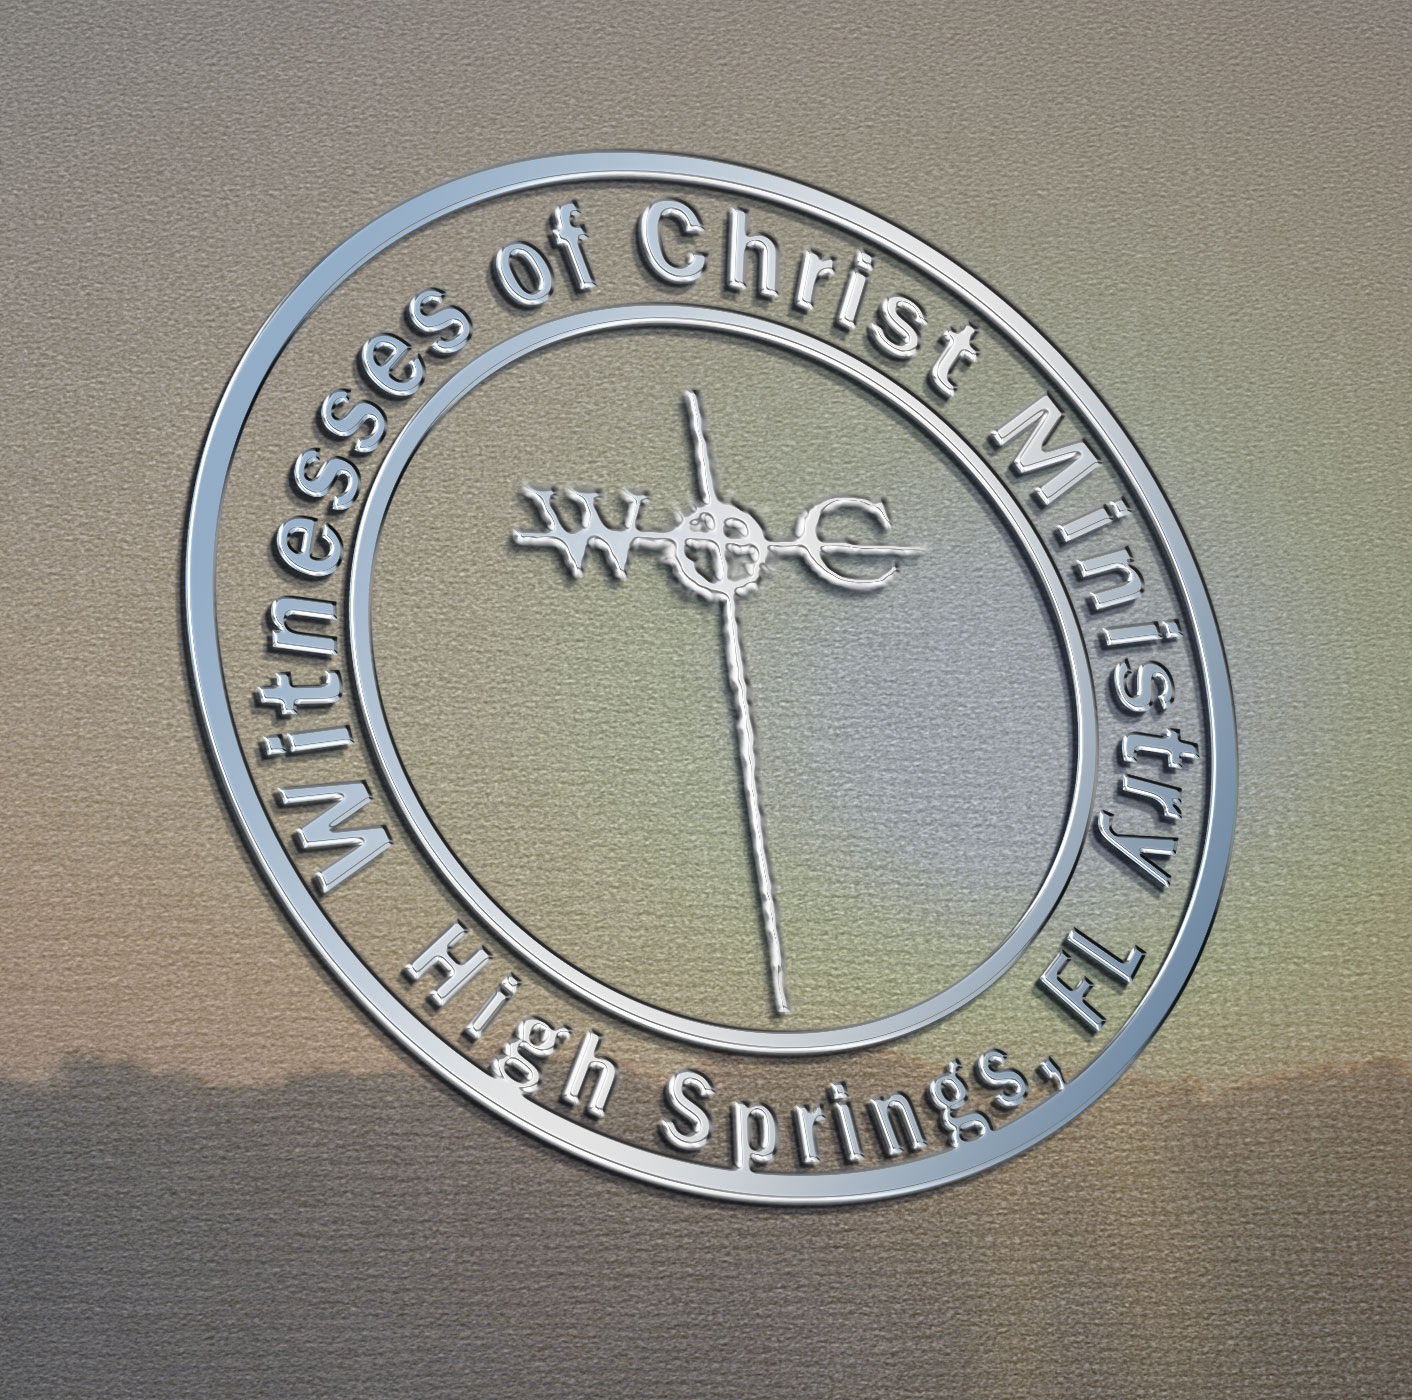 Witnesses of Christ Ministry